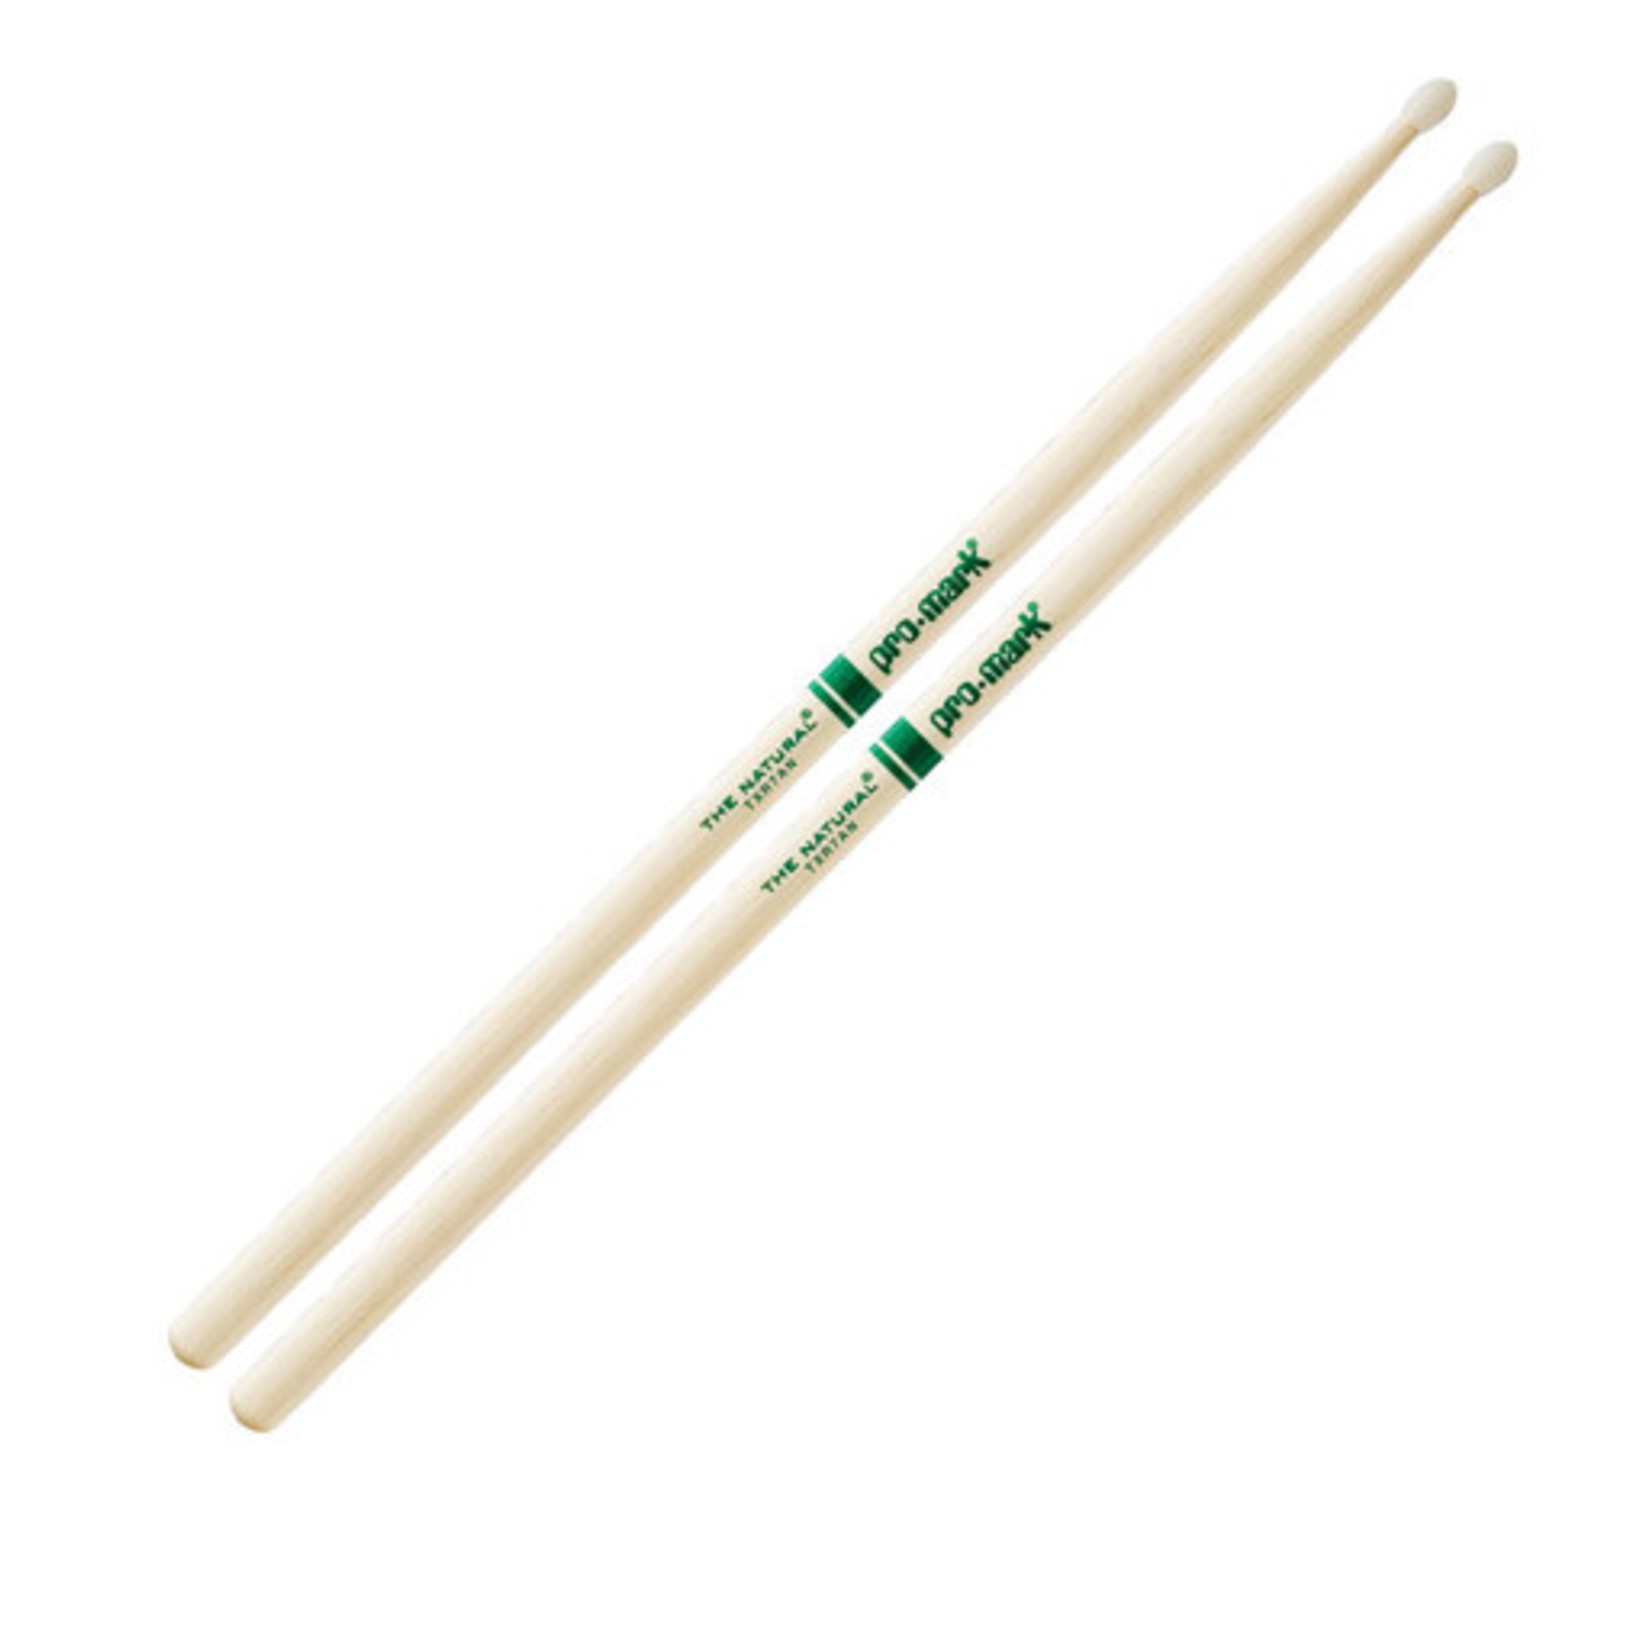 Promark ProMark Classic Forward 7A Raw Hickory, Oval Nylon Tip Drumstick